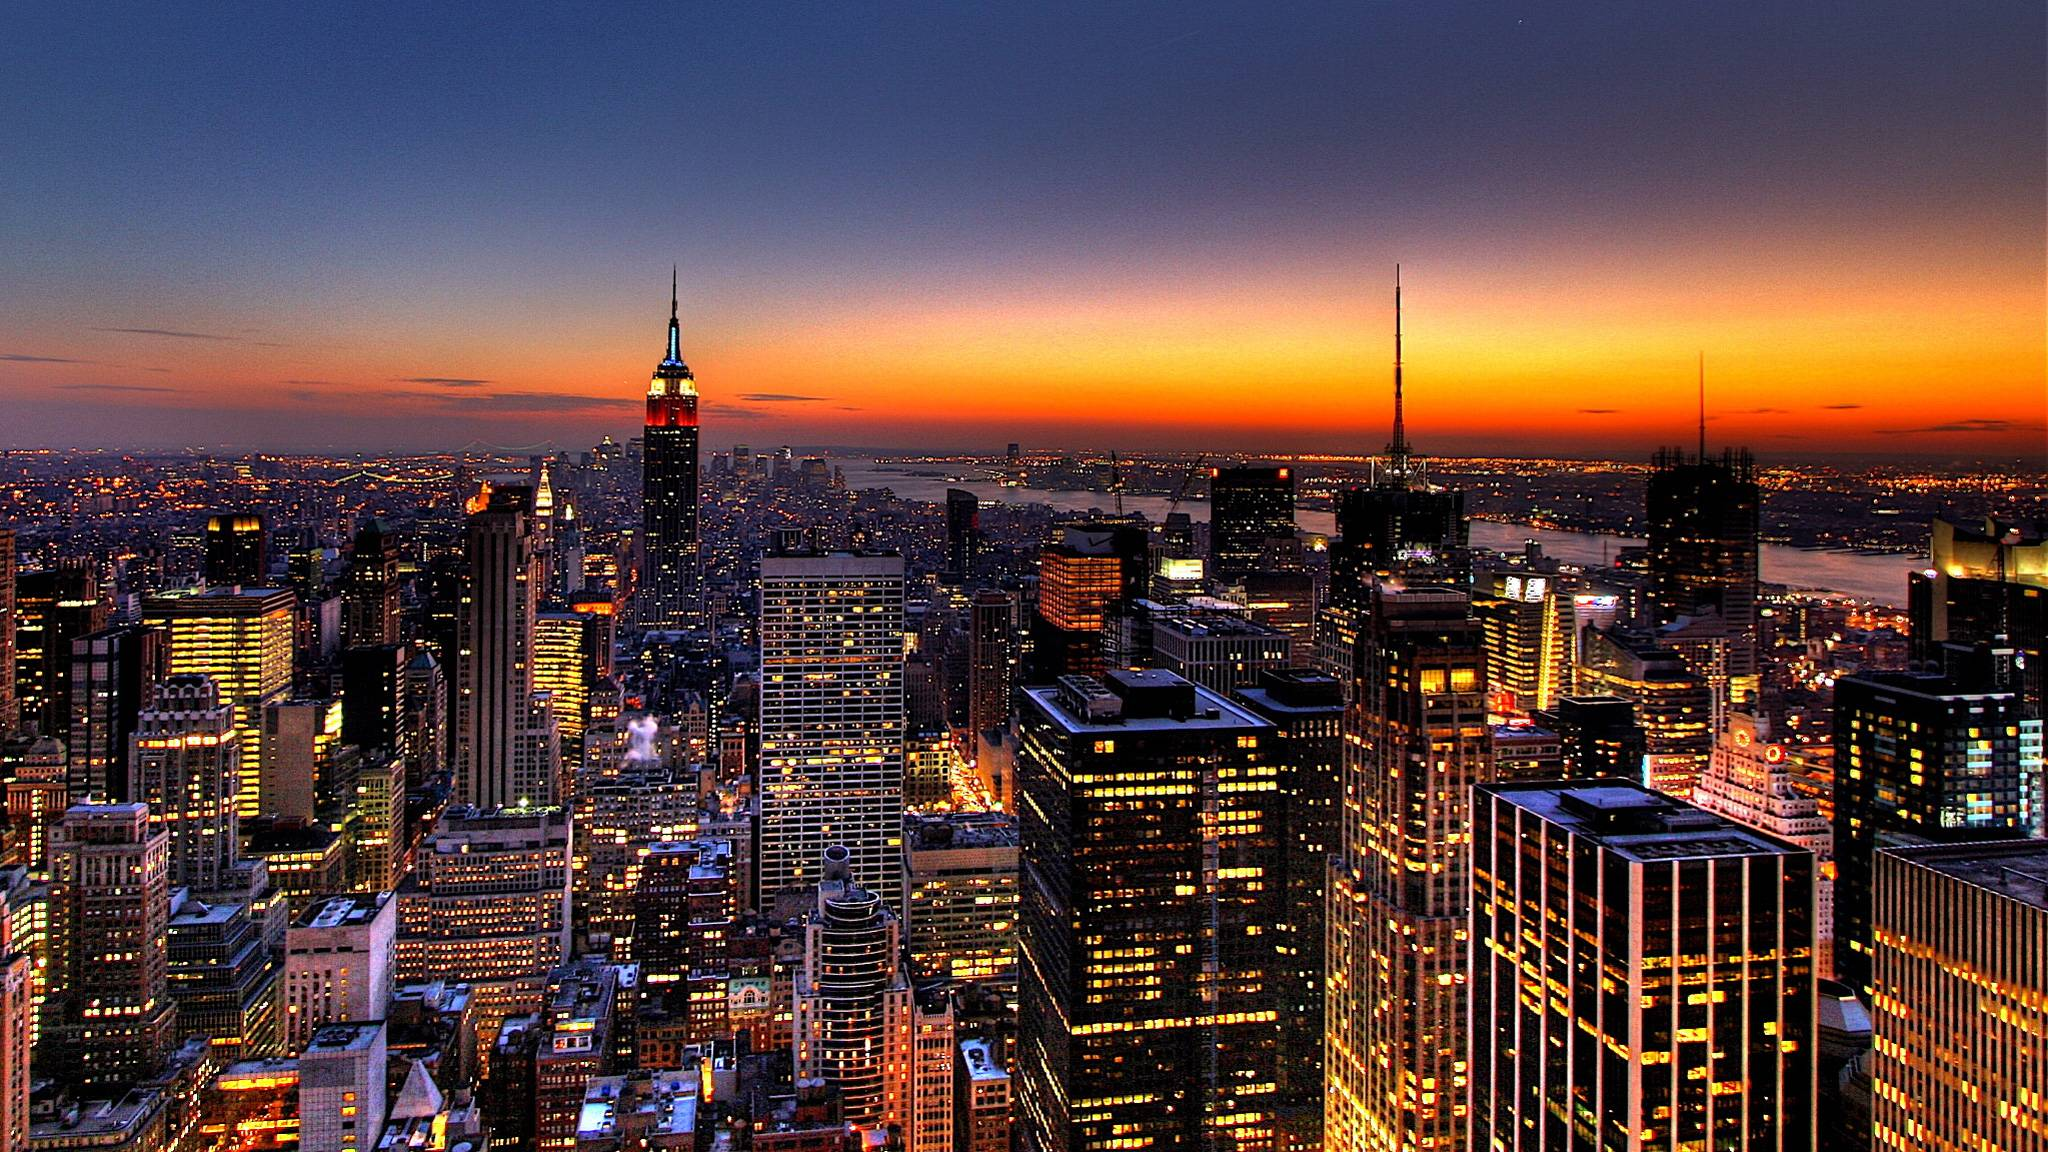 Download New York City Skyline At Night Wallpaper Gallery